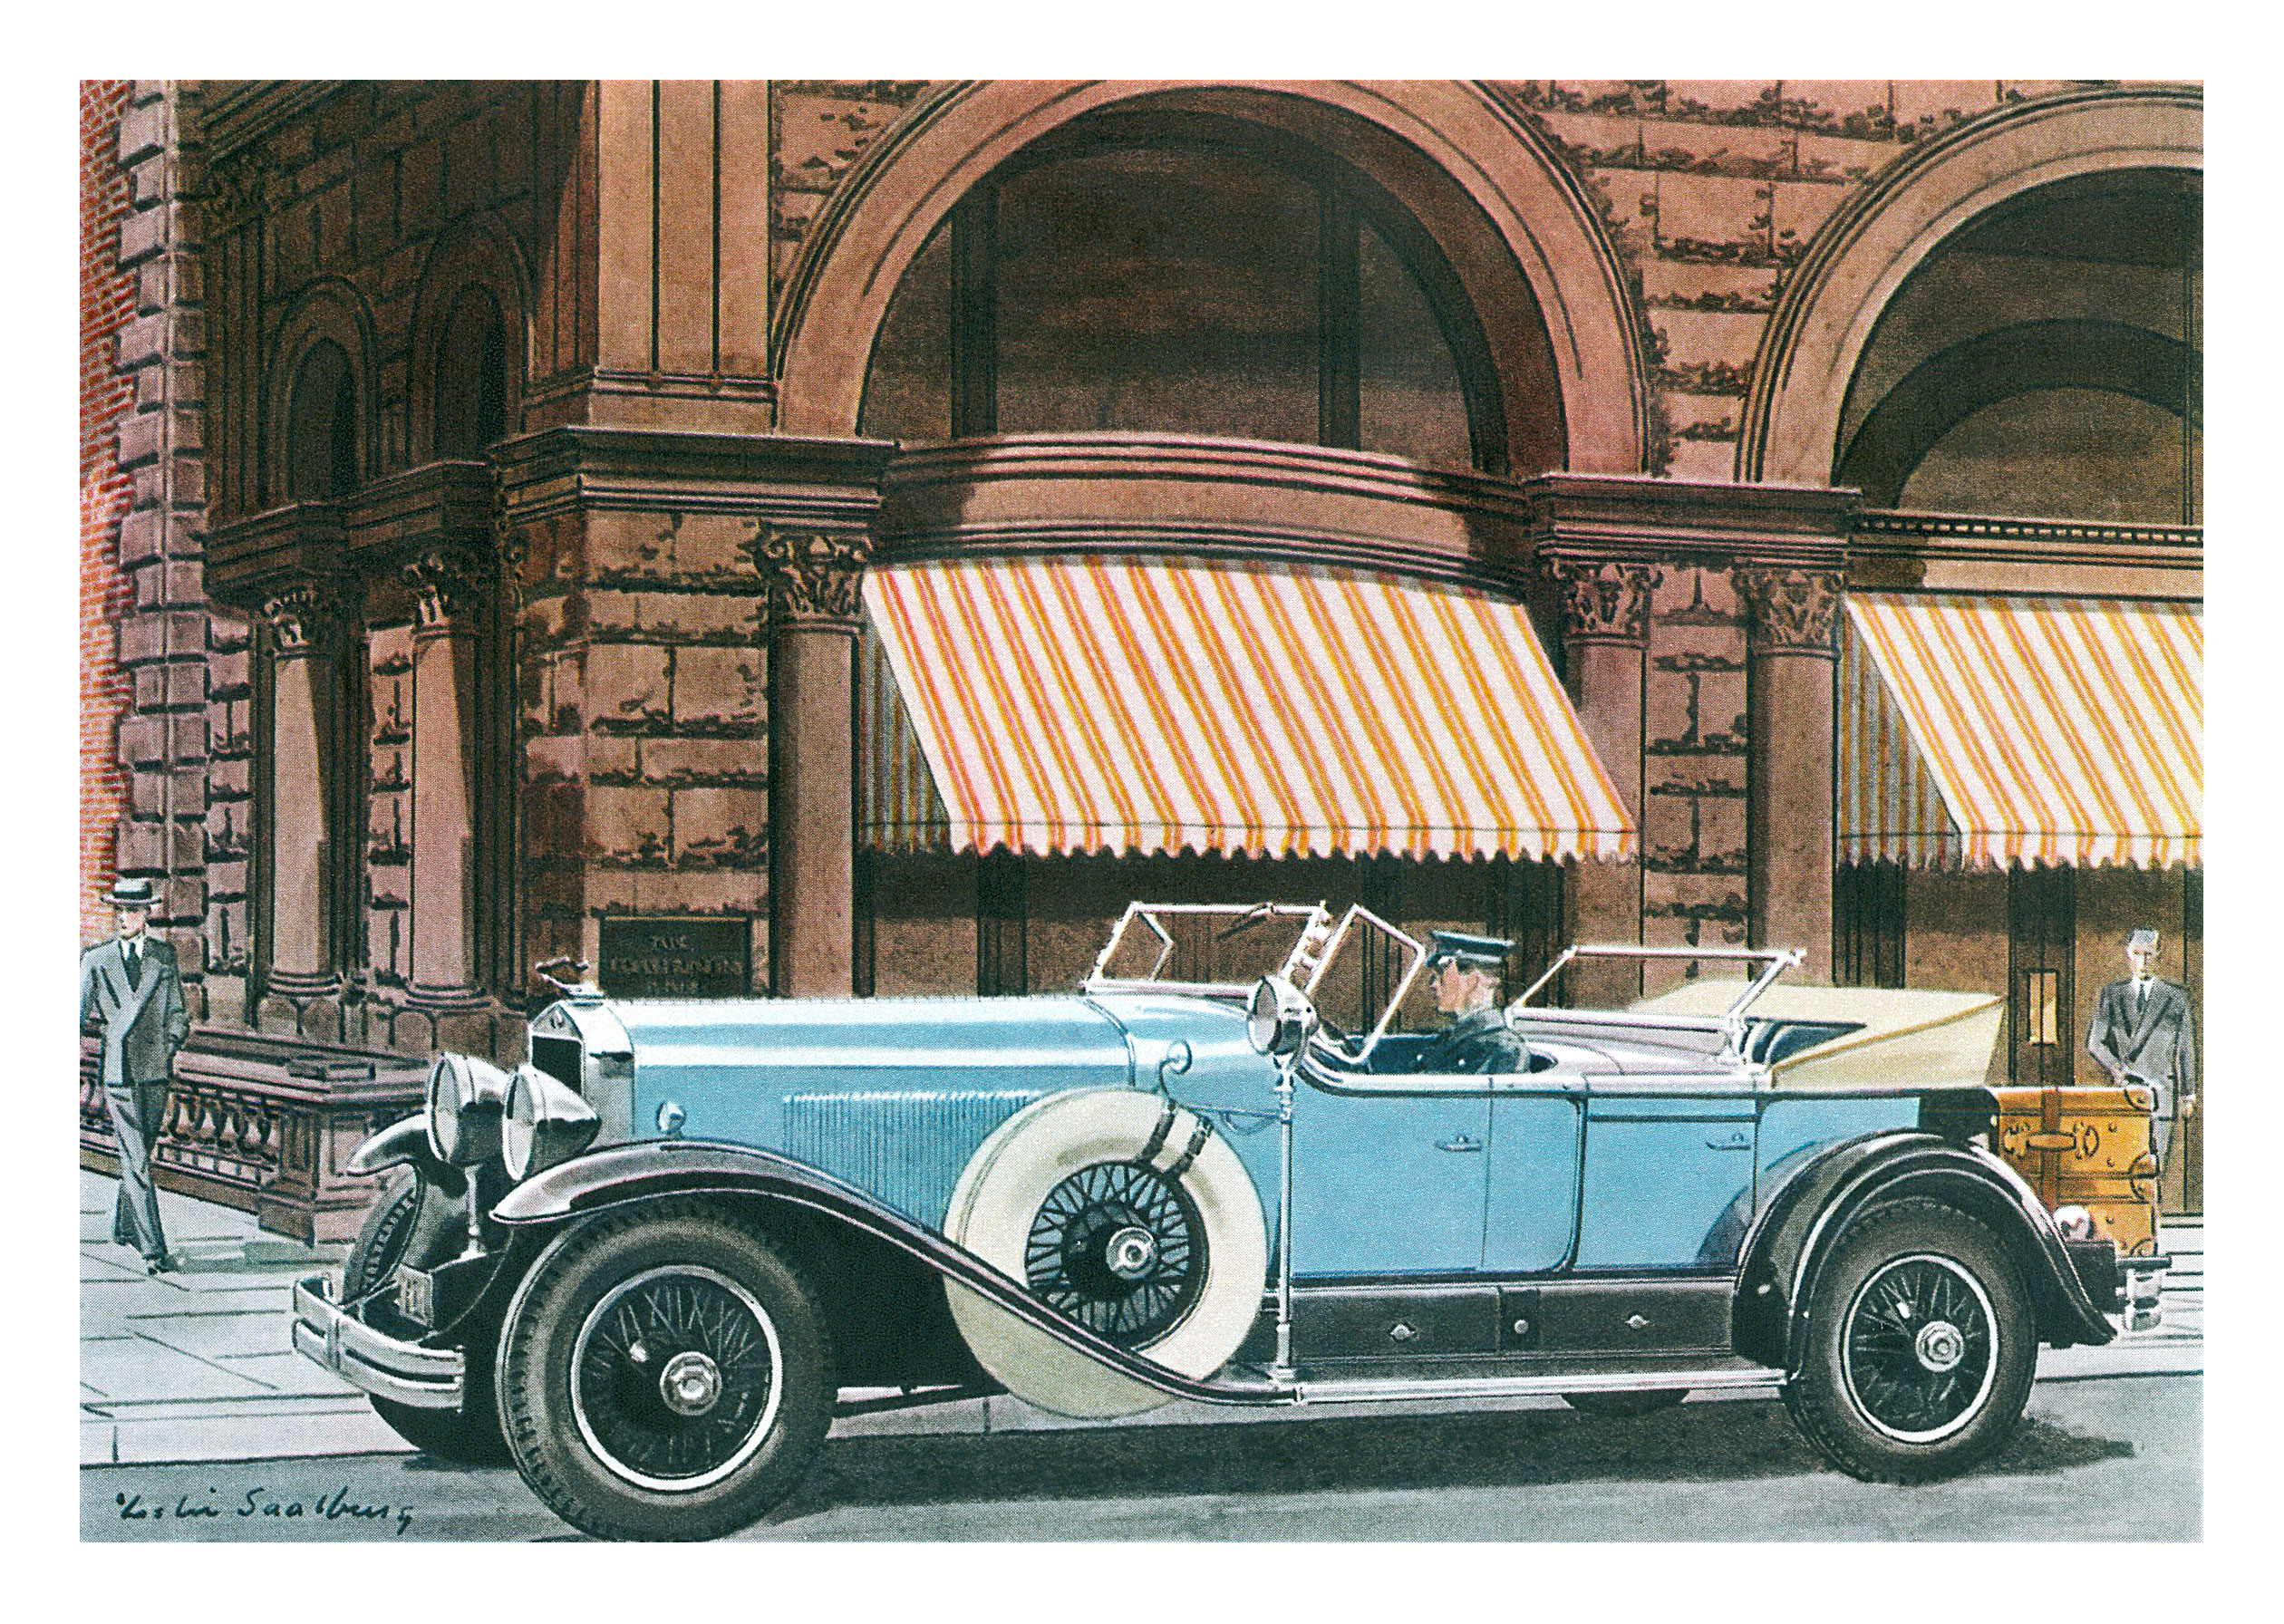 1929 Cadillac Sport Phaeton - Illustrated by Leslie Saalburg